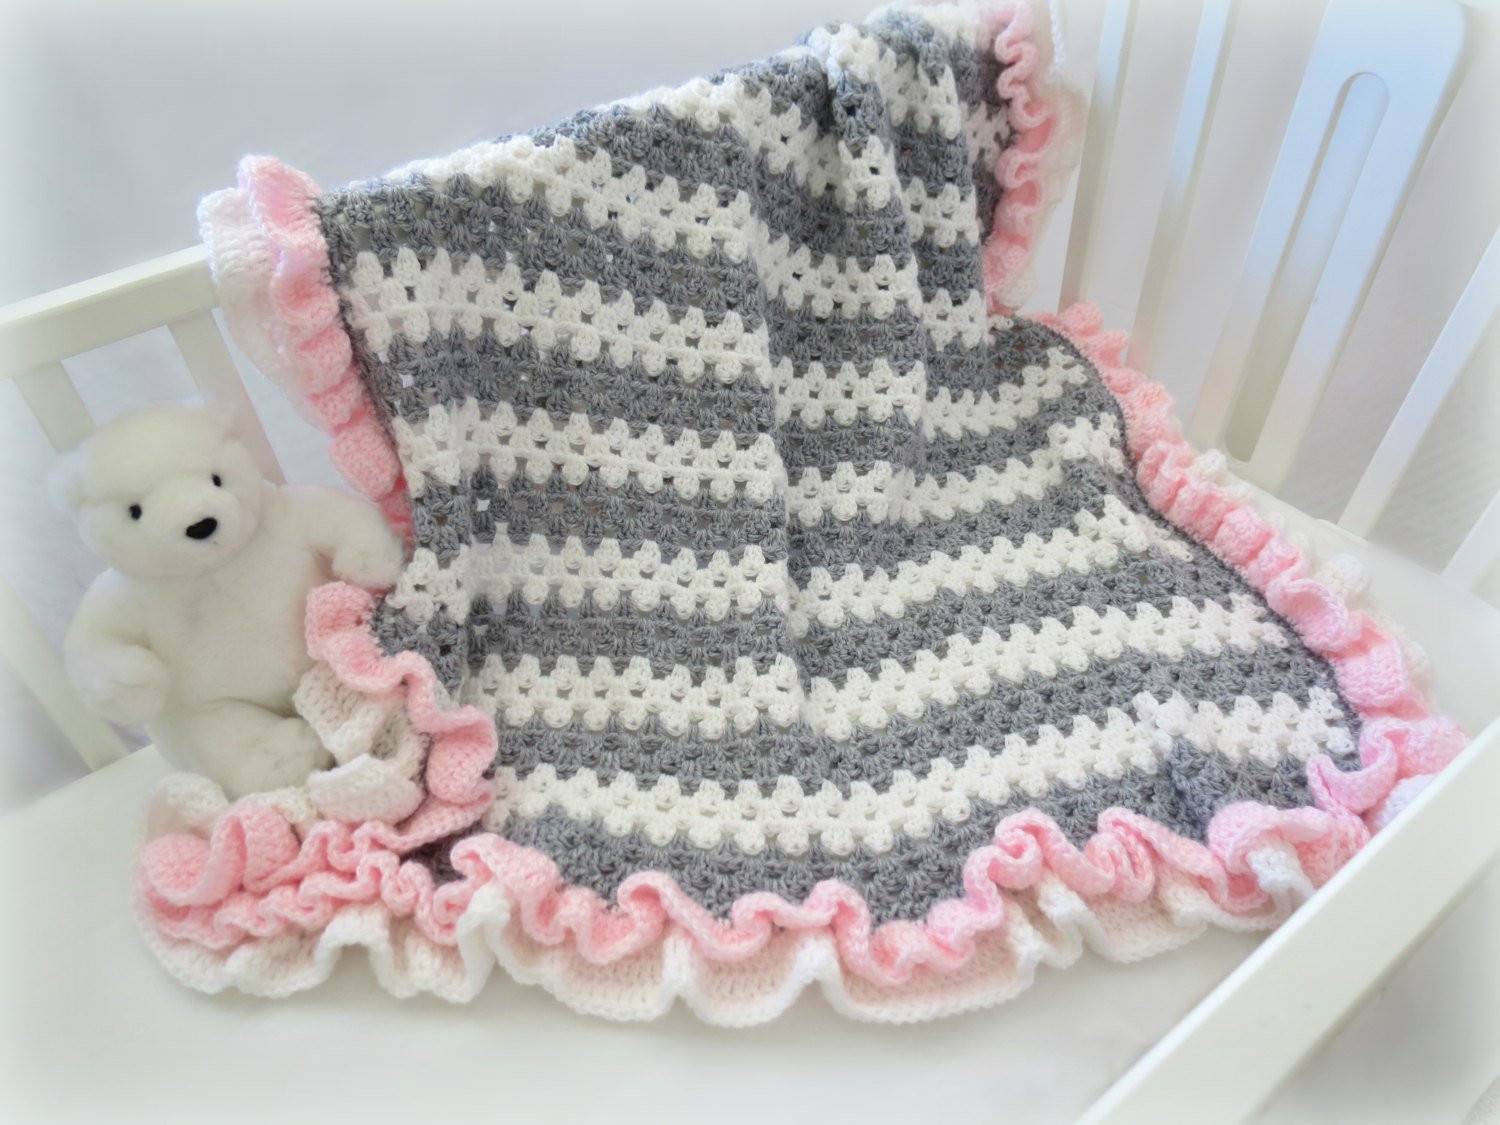 Baby Boy Crochet Blanket Patterns New Crochet Baby Blanket Pattern Baby Crochet Blanket Afghan Of Baby Boy Crochet Blanket Patterns Elegant Fiber Flux Beautiful Blankets 30 Free Crochet Blanket